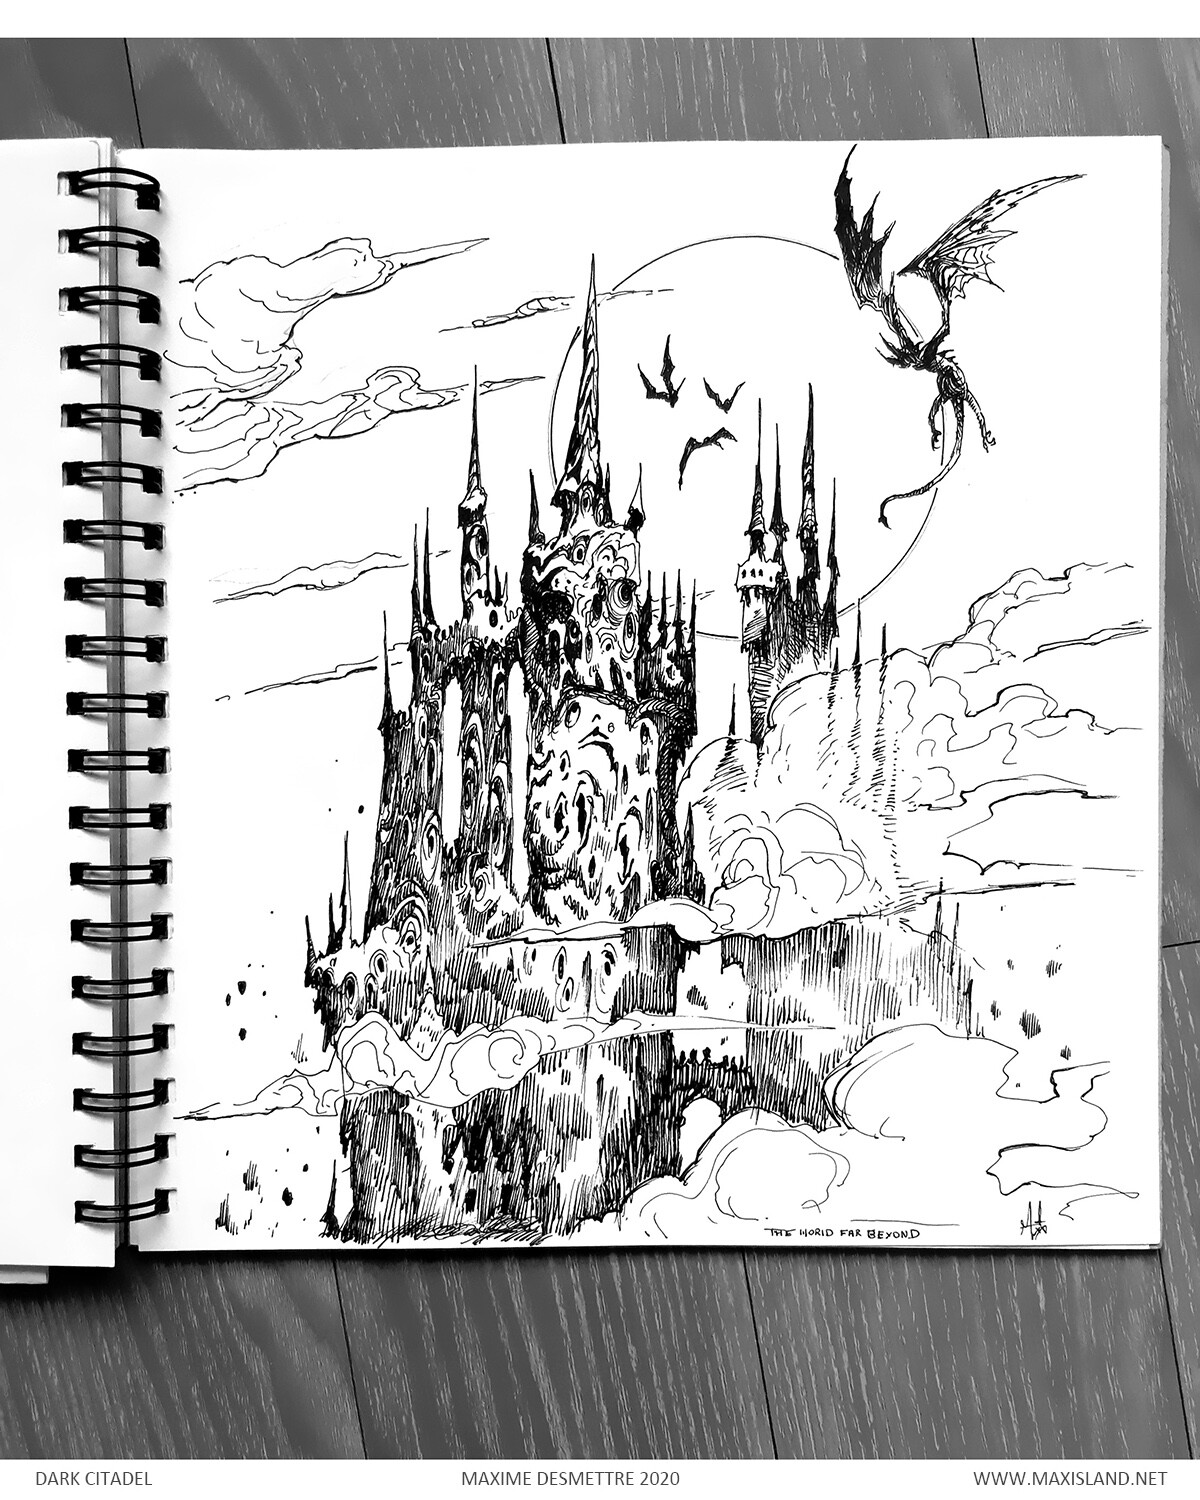 Background sketch on paper, to be combined with a second sketch for the foreground